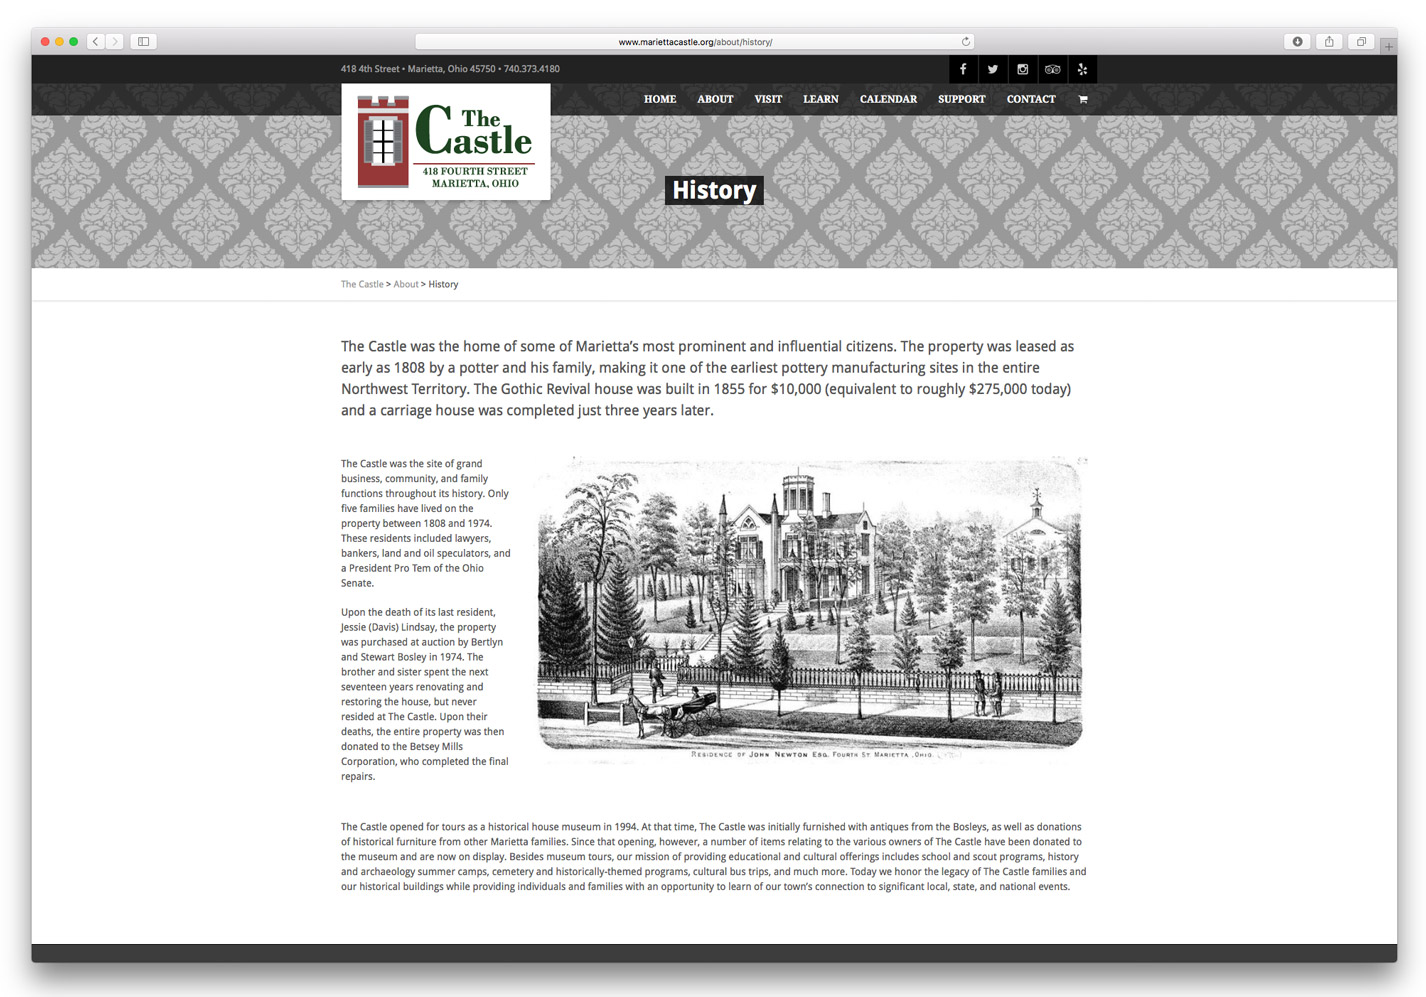 The Castle Website